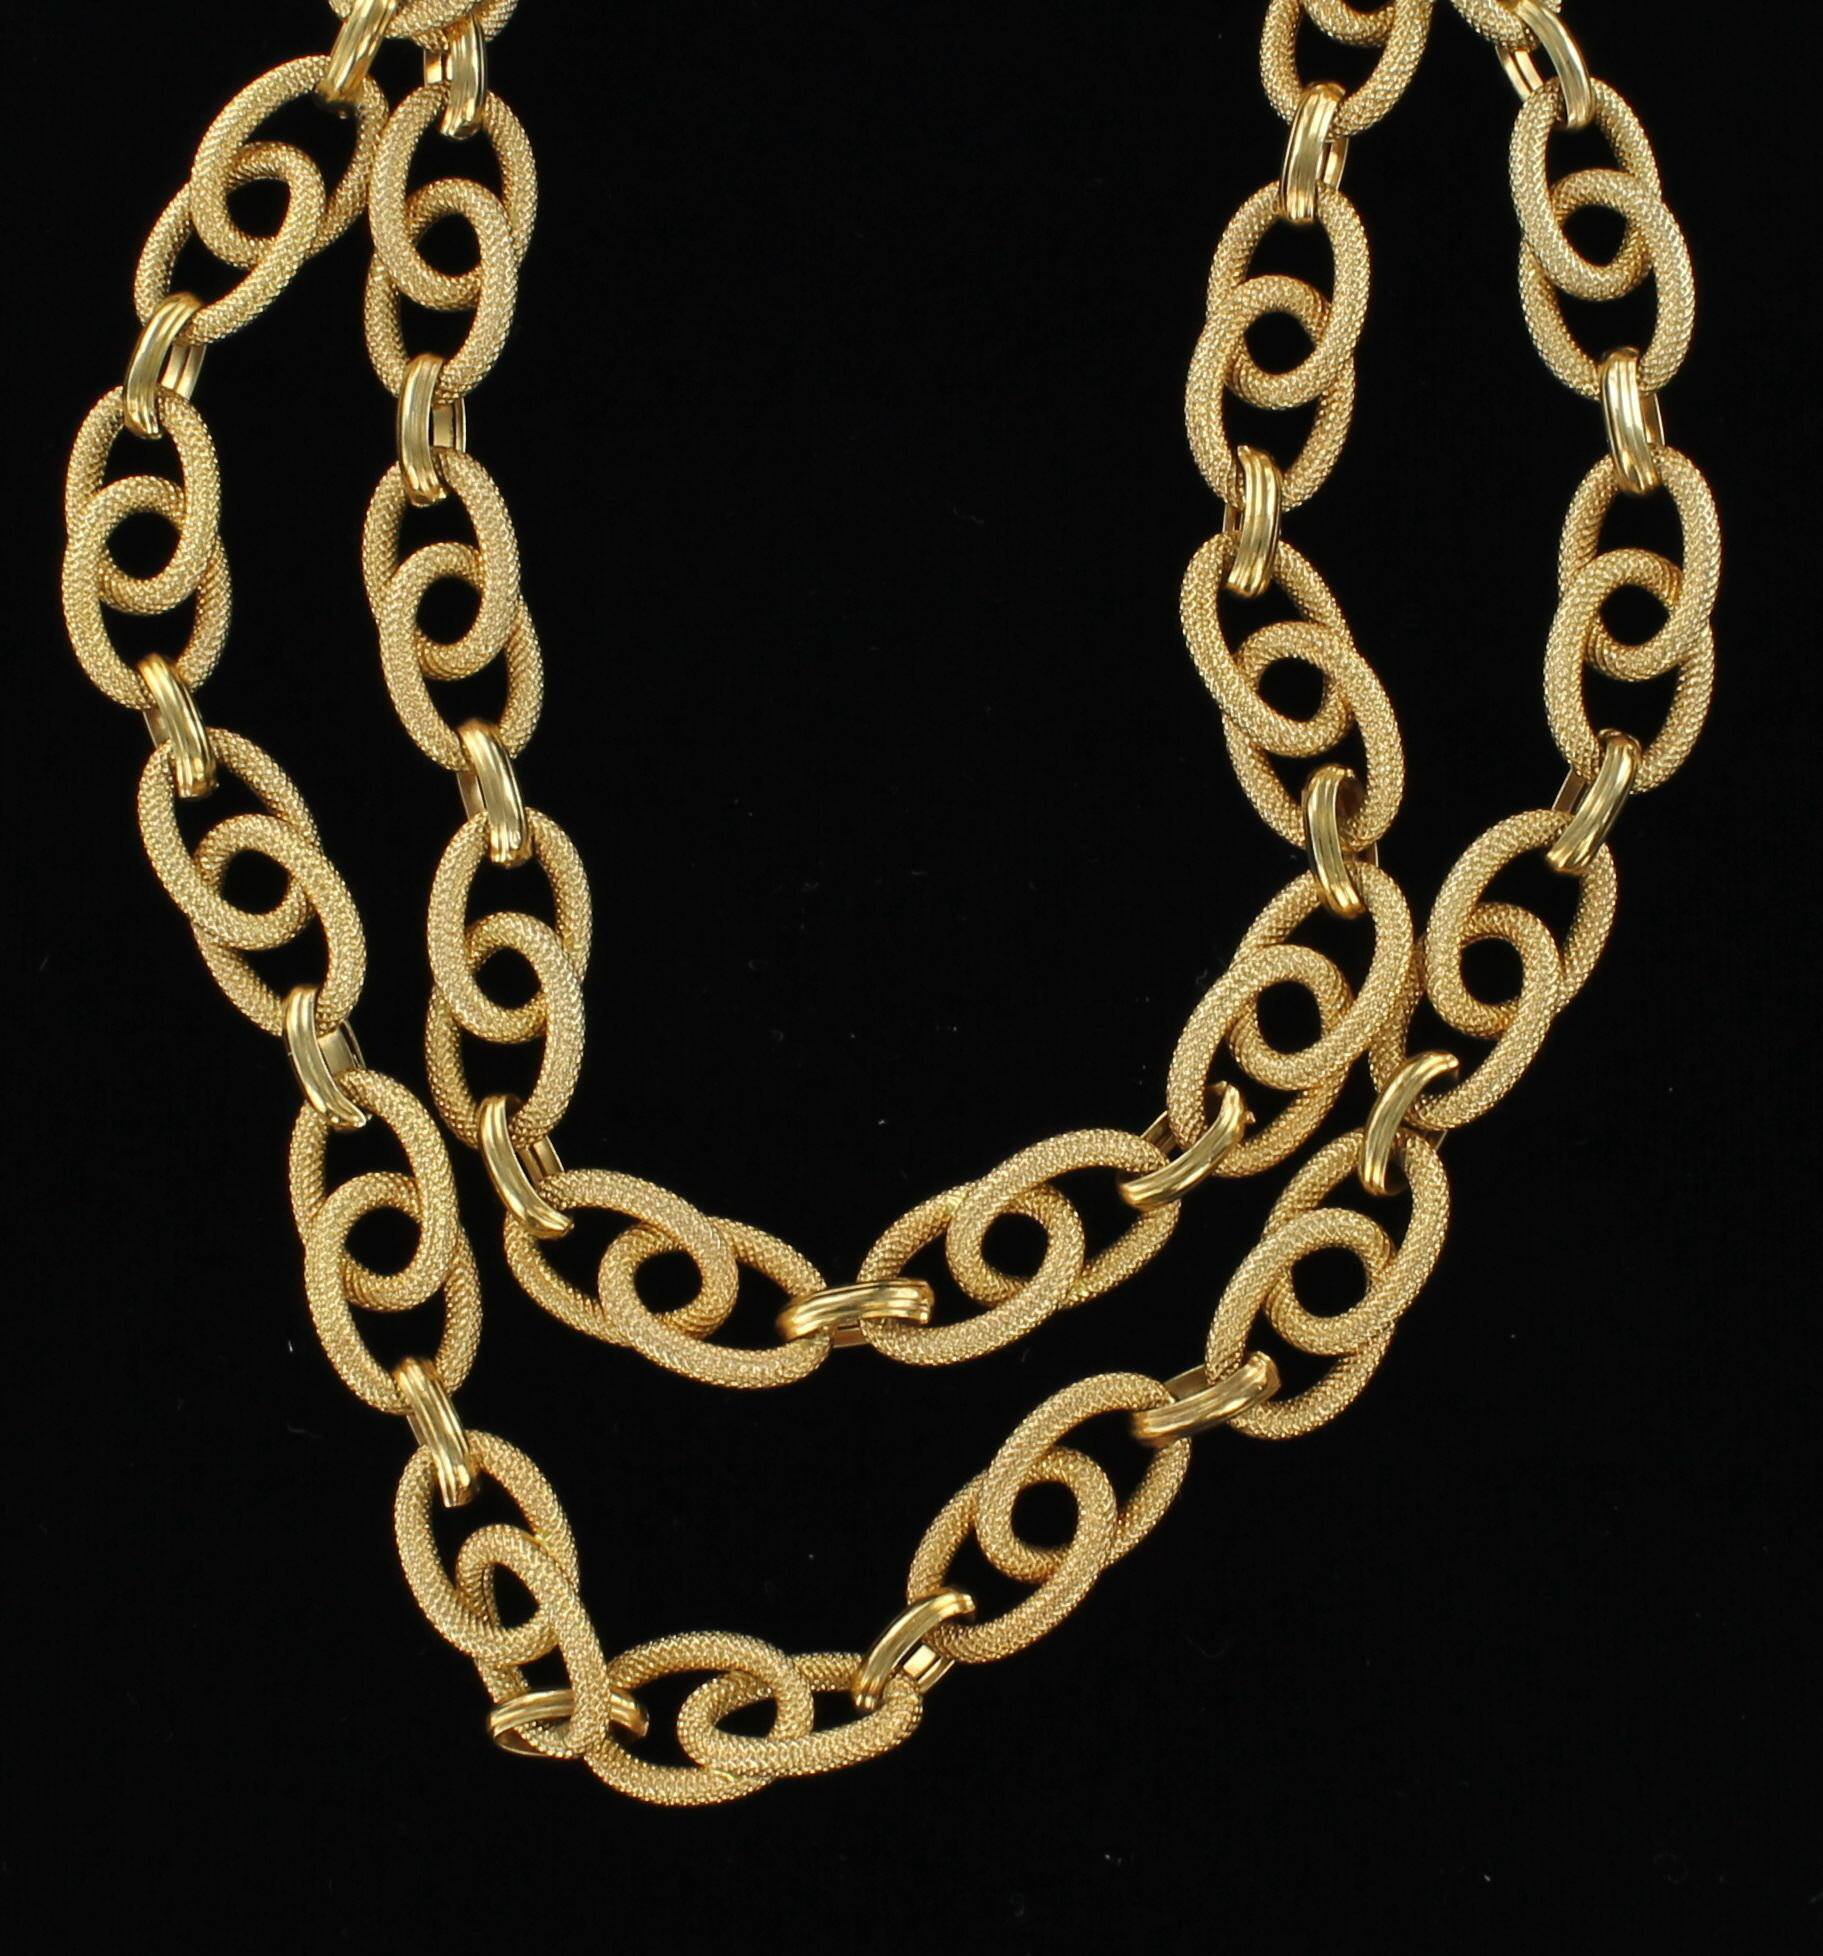 18KT CHAIN/NECKLACE